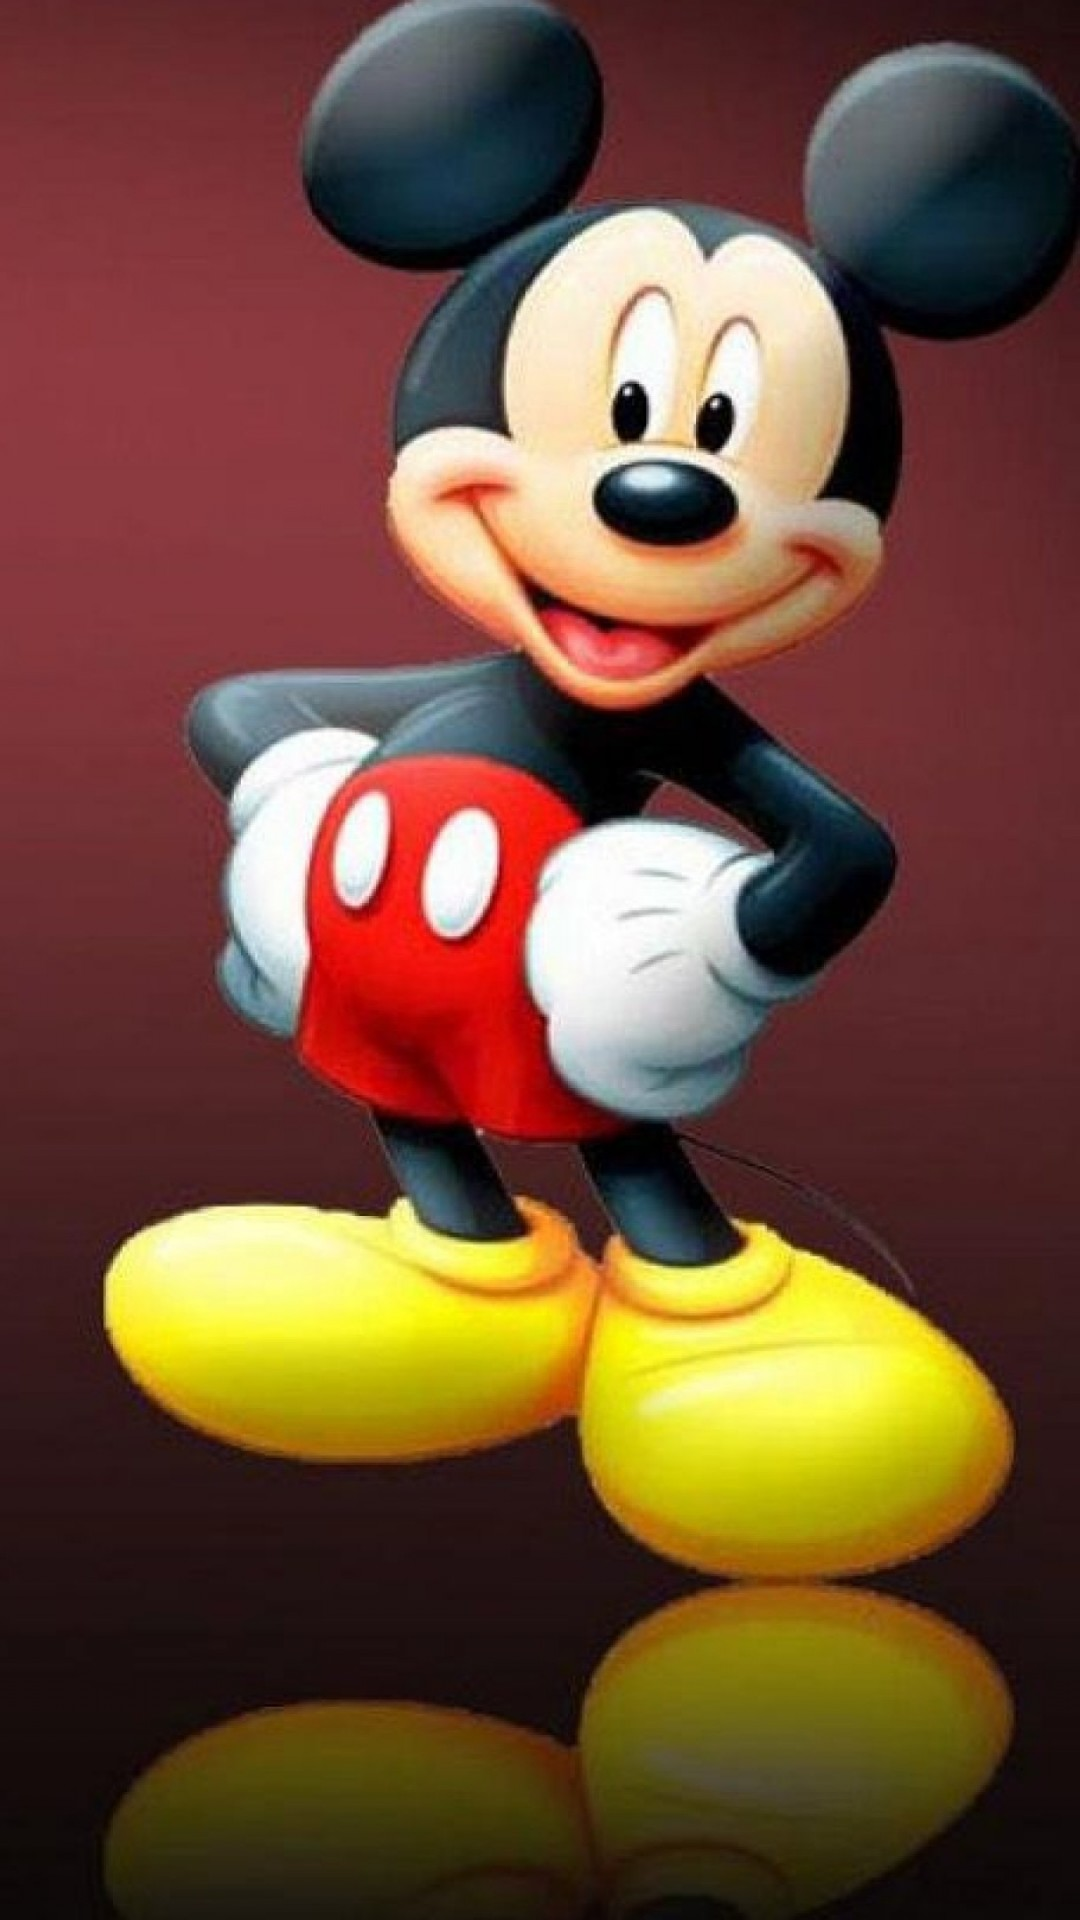 Mickey Mouse 4k Cartoon Wallpapers For Desktop 885838 Hd Wallpaper Backgrounds Download